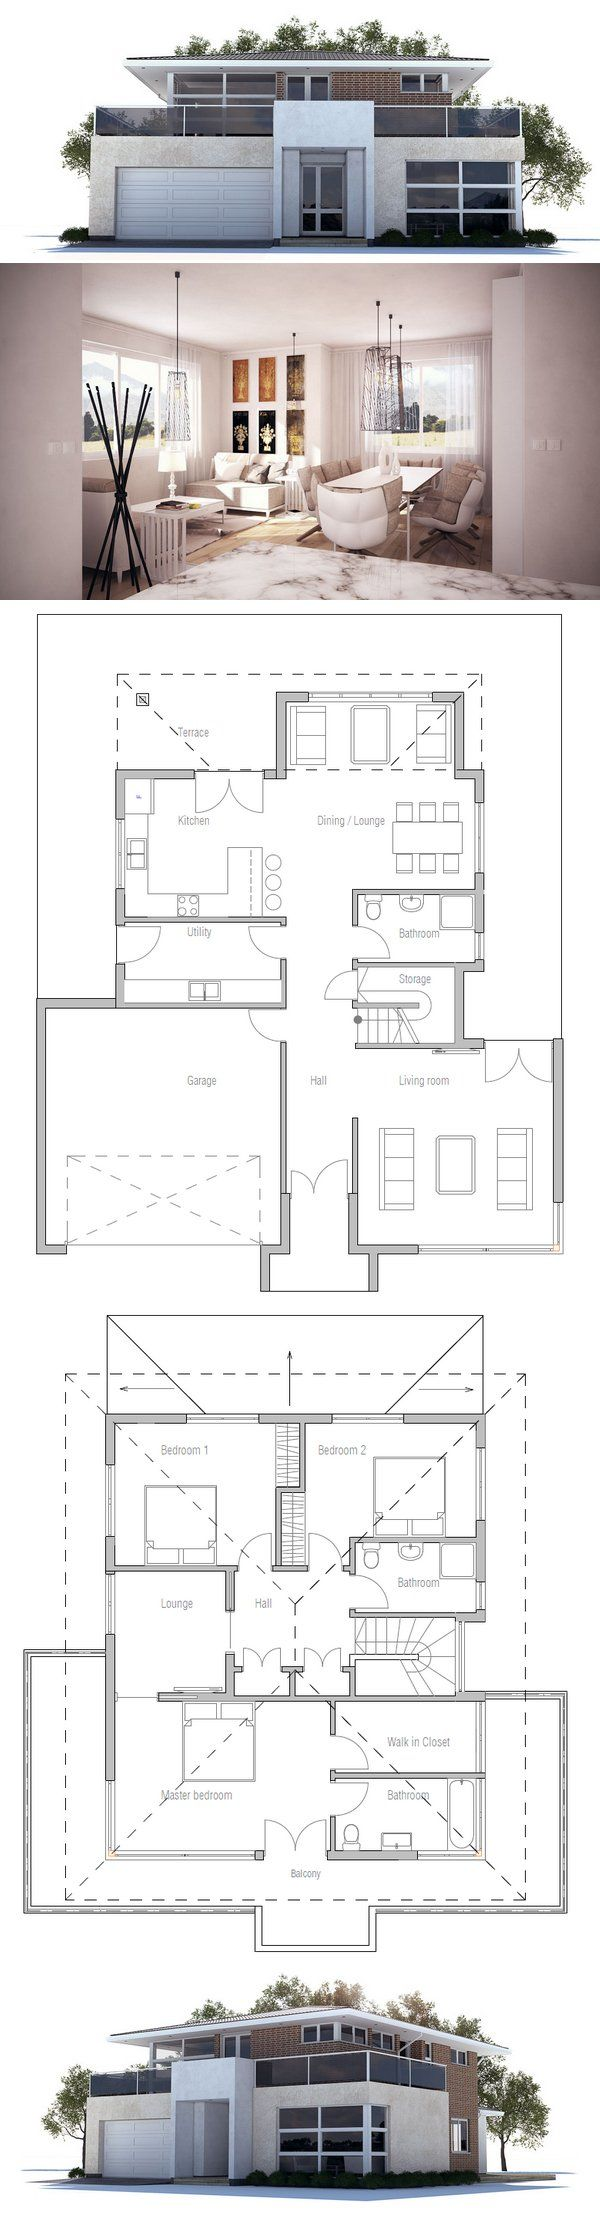 best 25 small modern houses ideas on pinterest small modern modern house plan with three bedrooms two living areas double garage floor plan